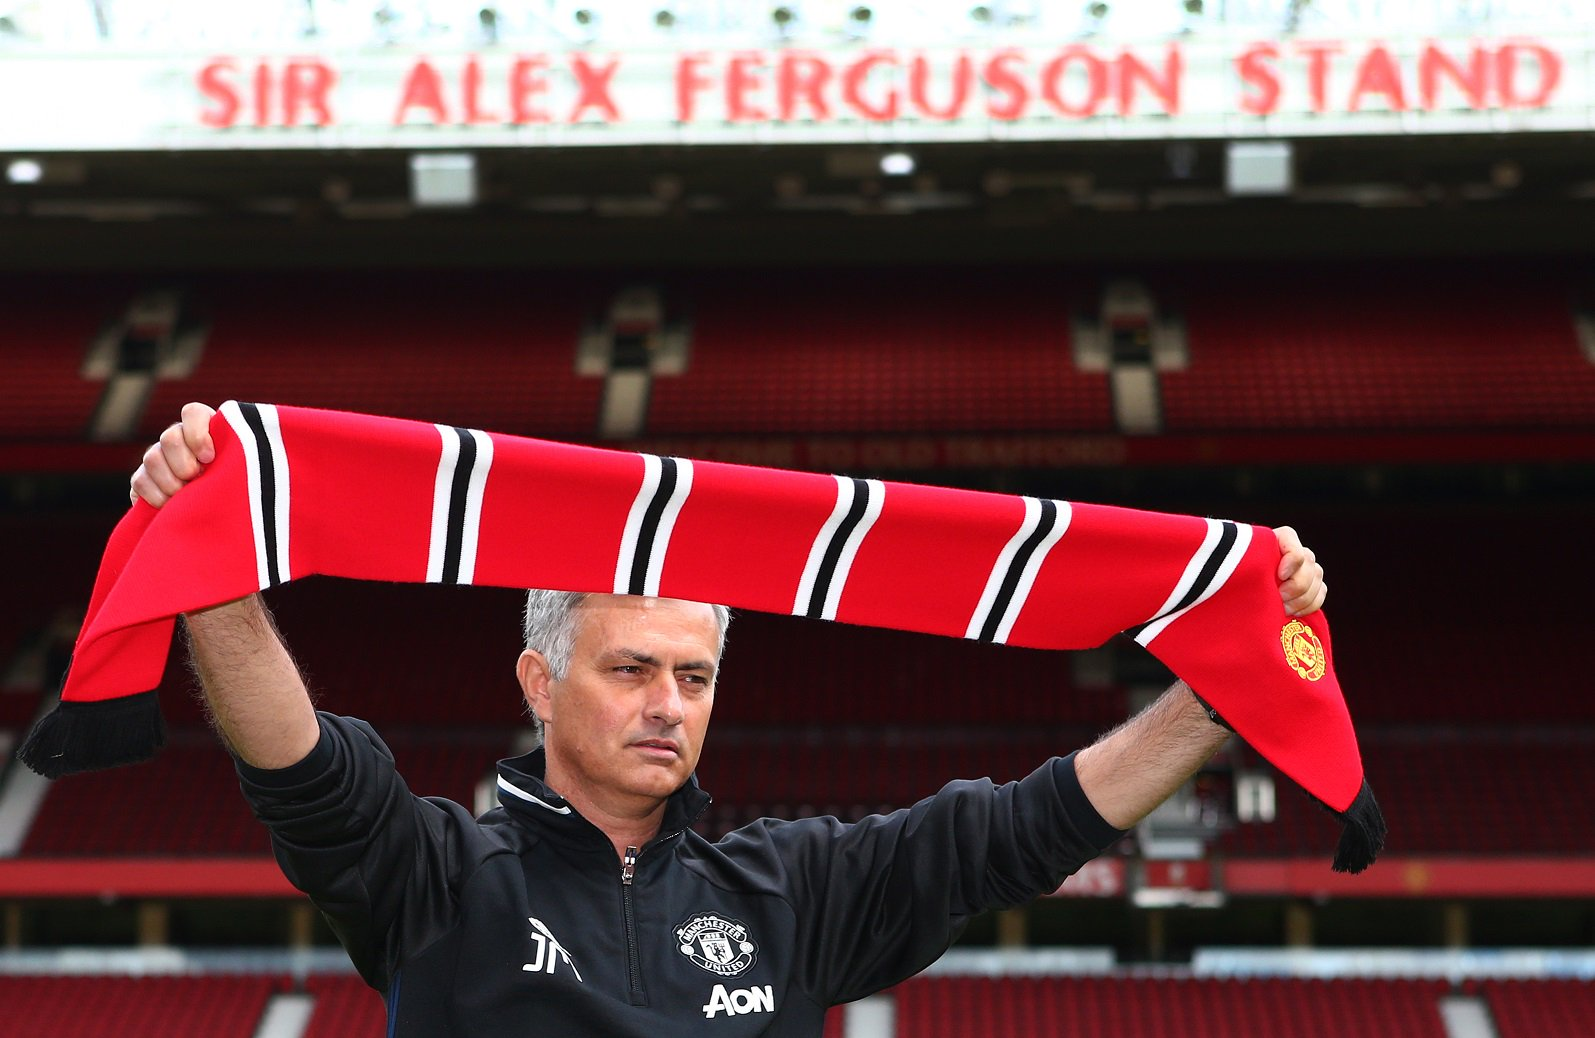 JOSE SPECIAL: Mourinho On Rivals, Rooney, Giggs, Fergie, UCL, Youth Record, Chelsea